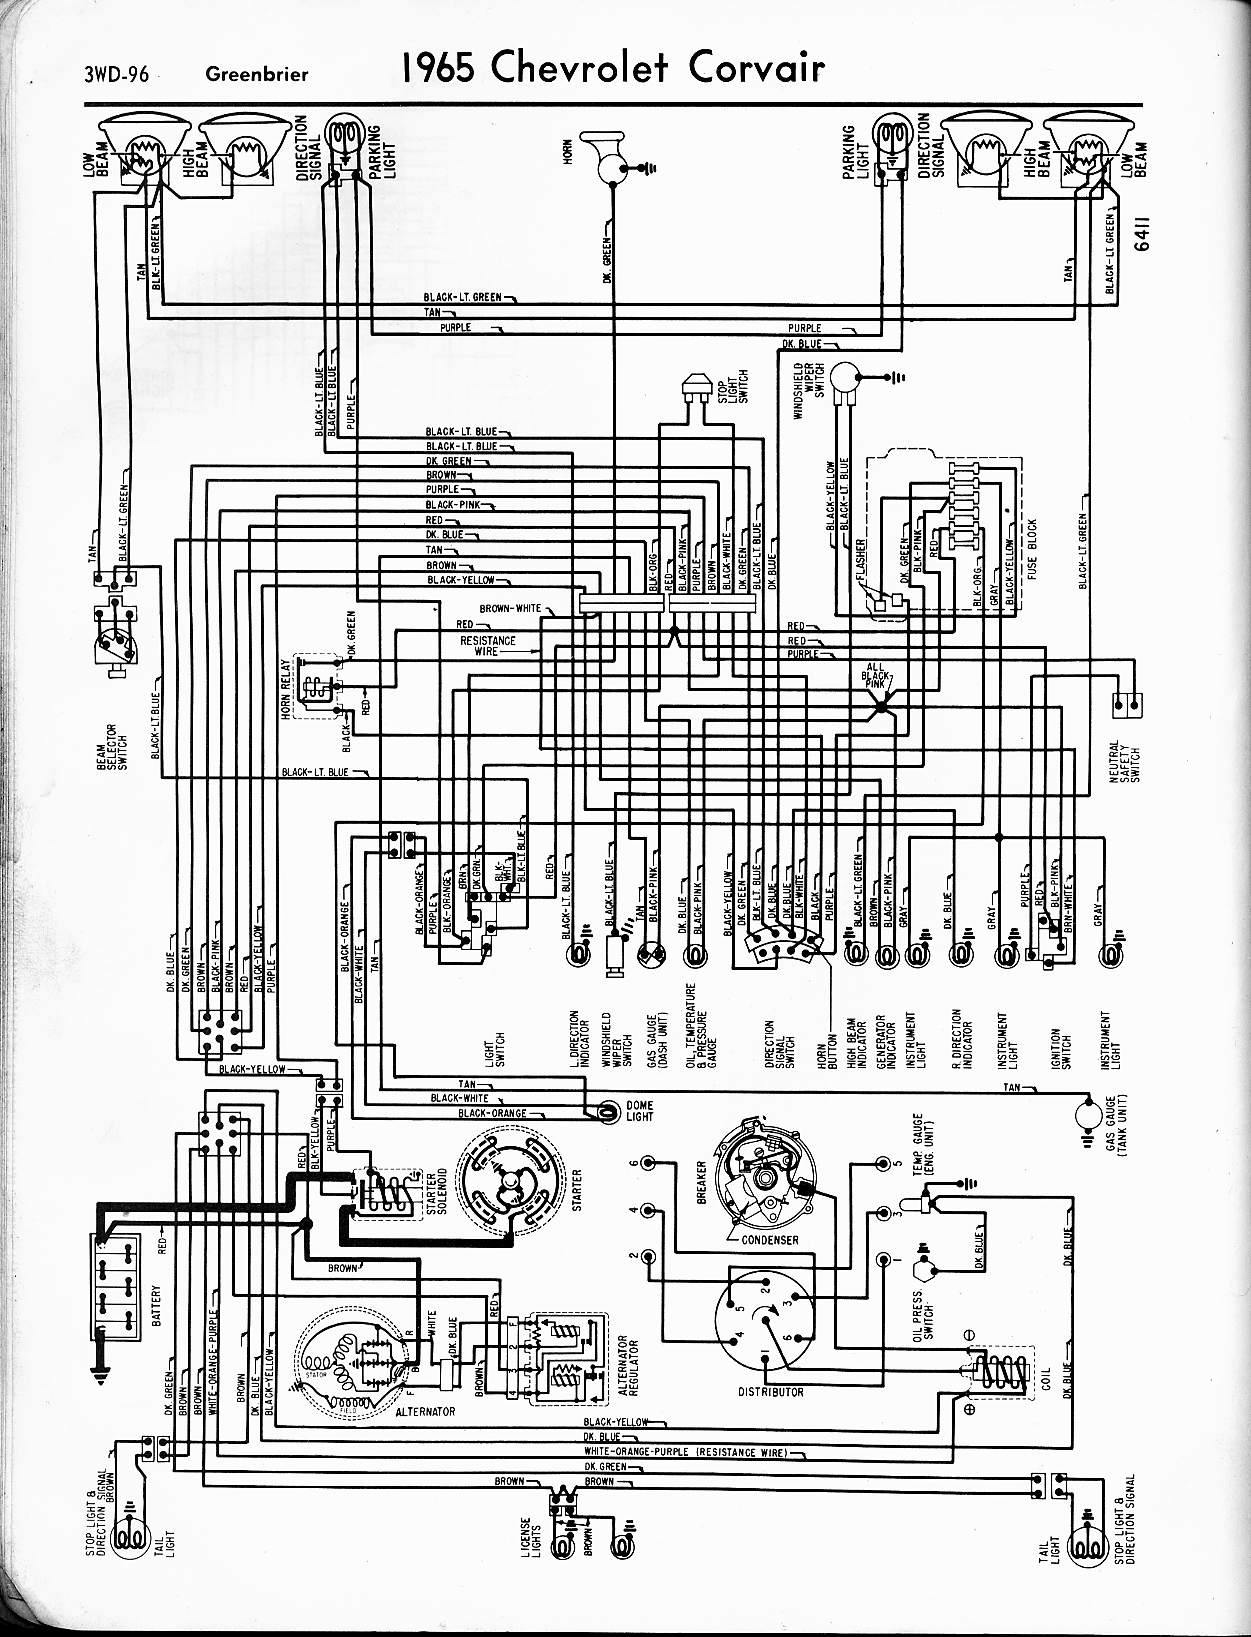 1963 chevy impala fuse block diagram  1963  free engine